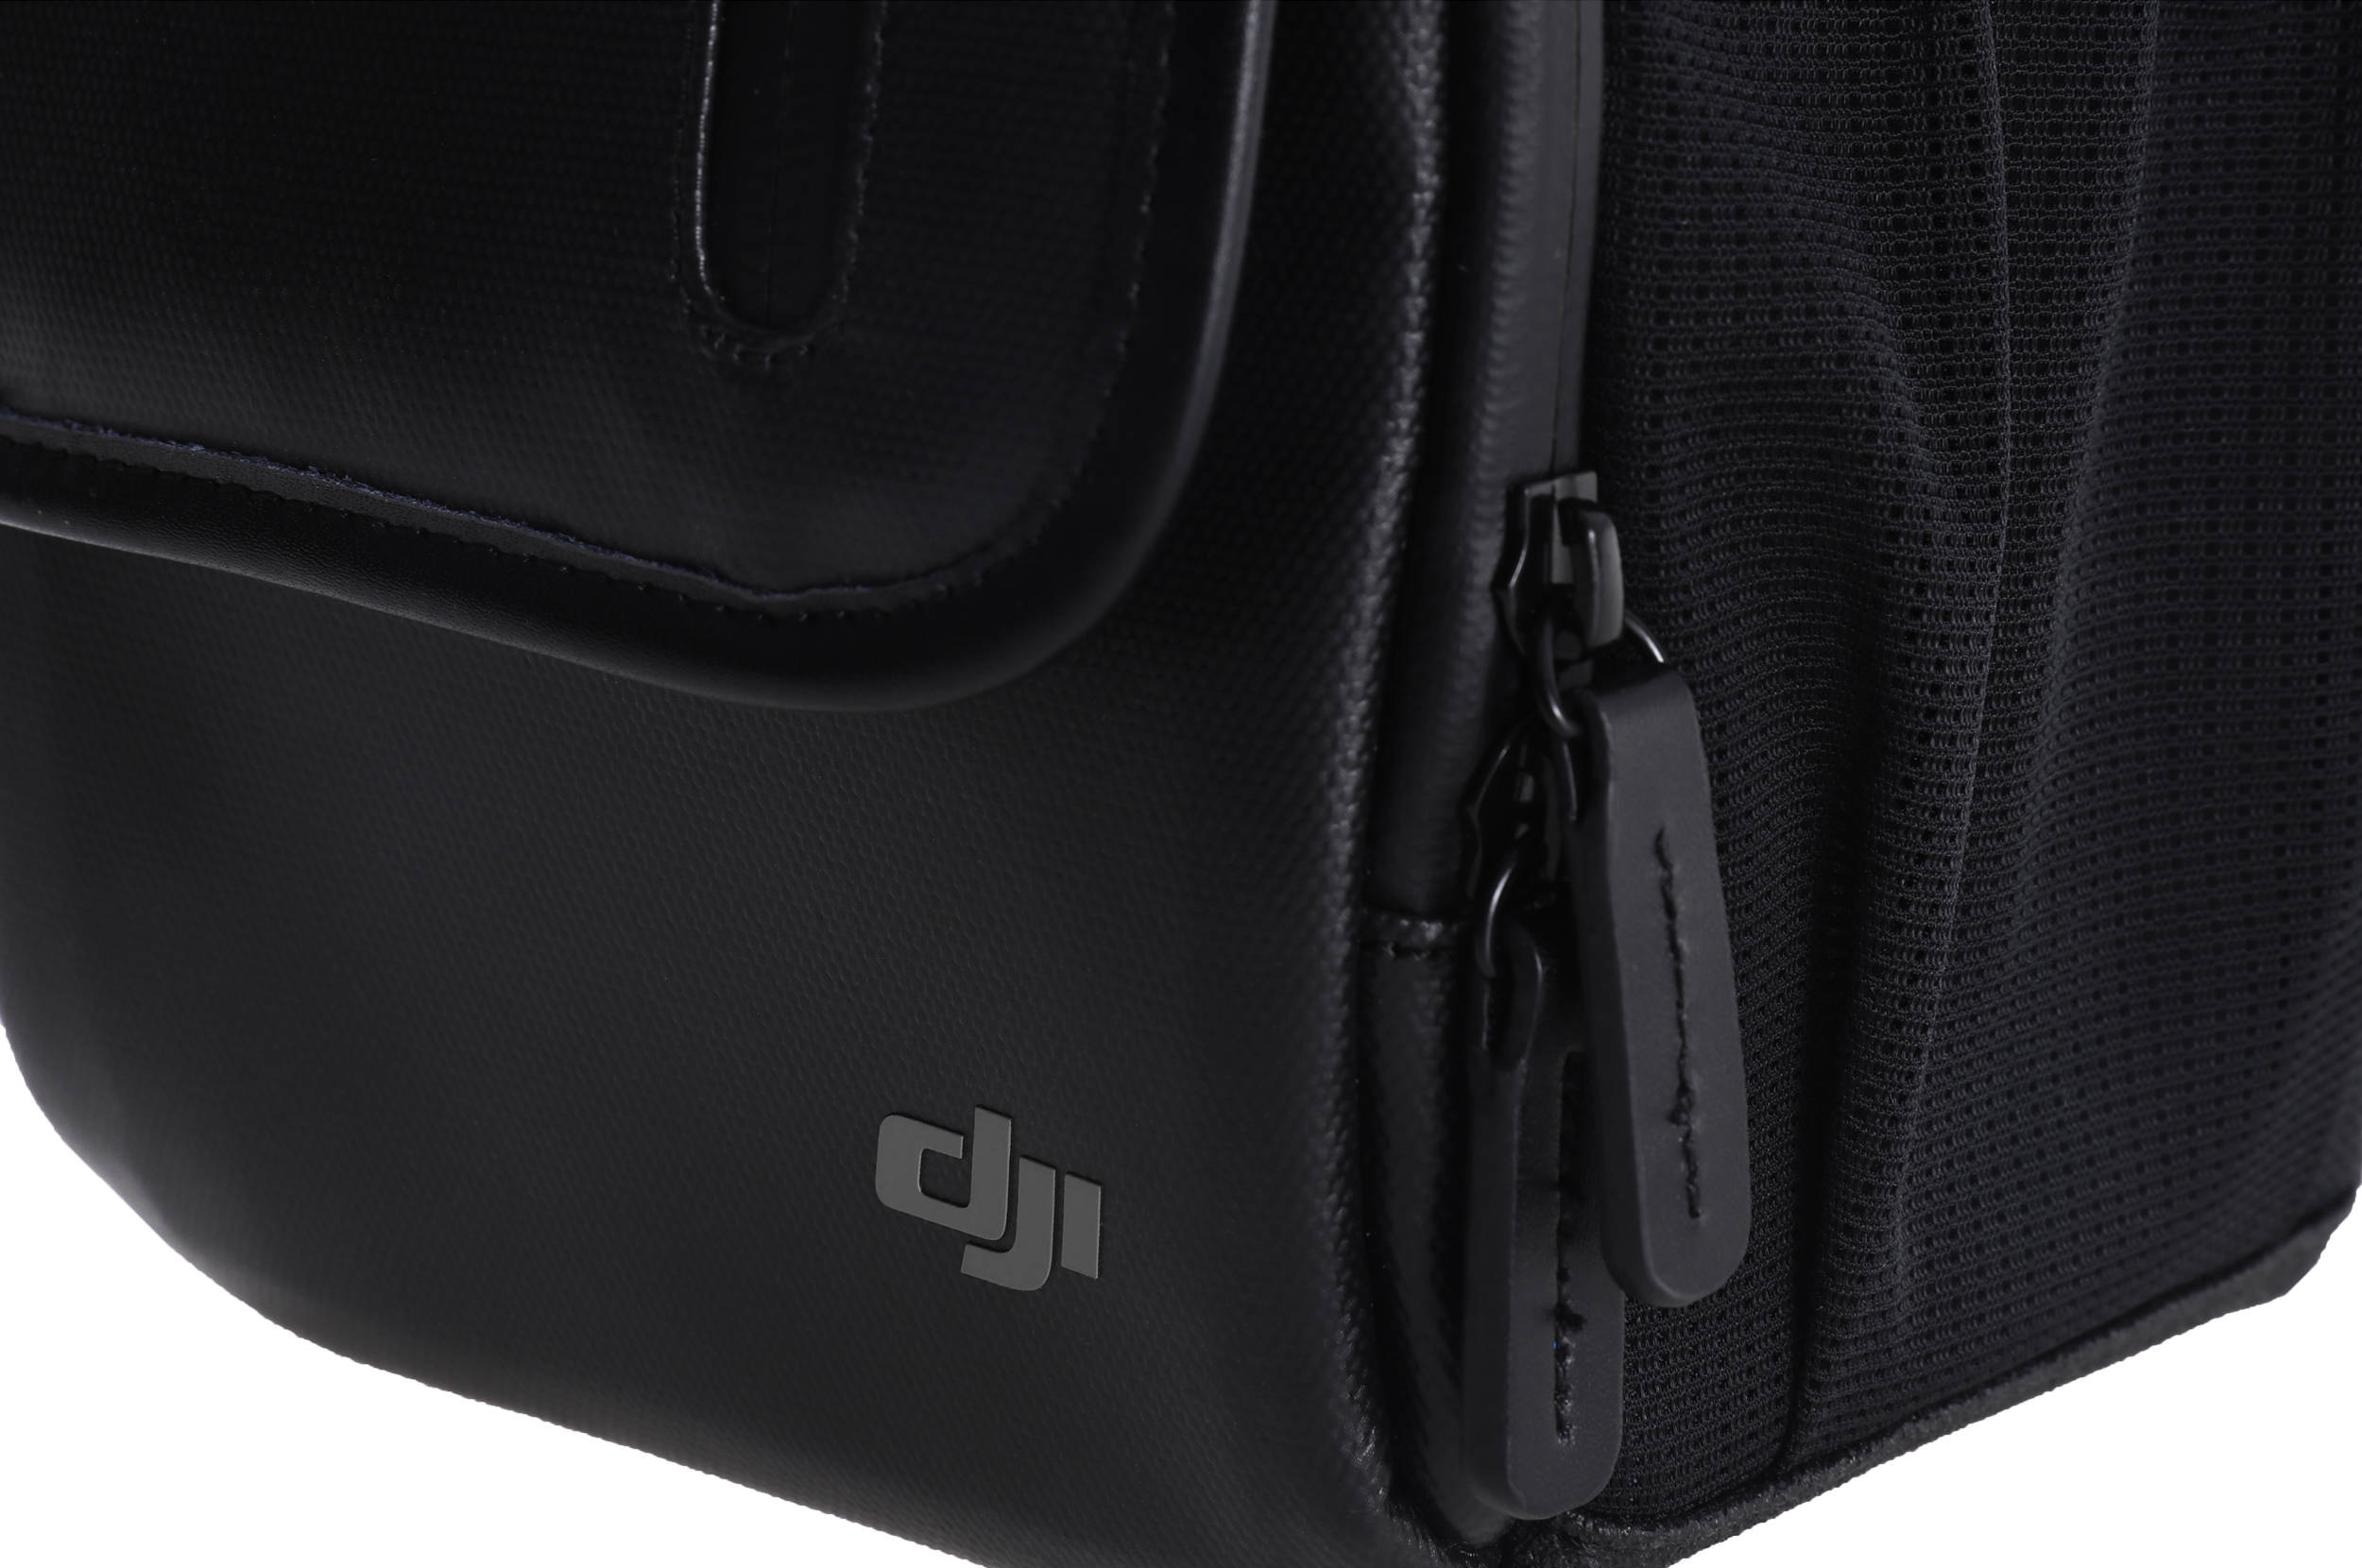 Сумка DJI Shoulder Bag (CP.PT.000591) для Mavic Pro-4